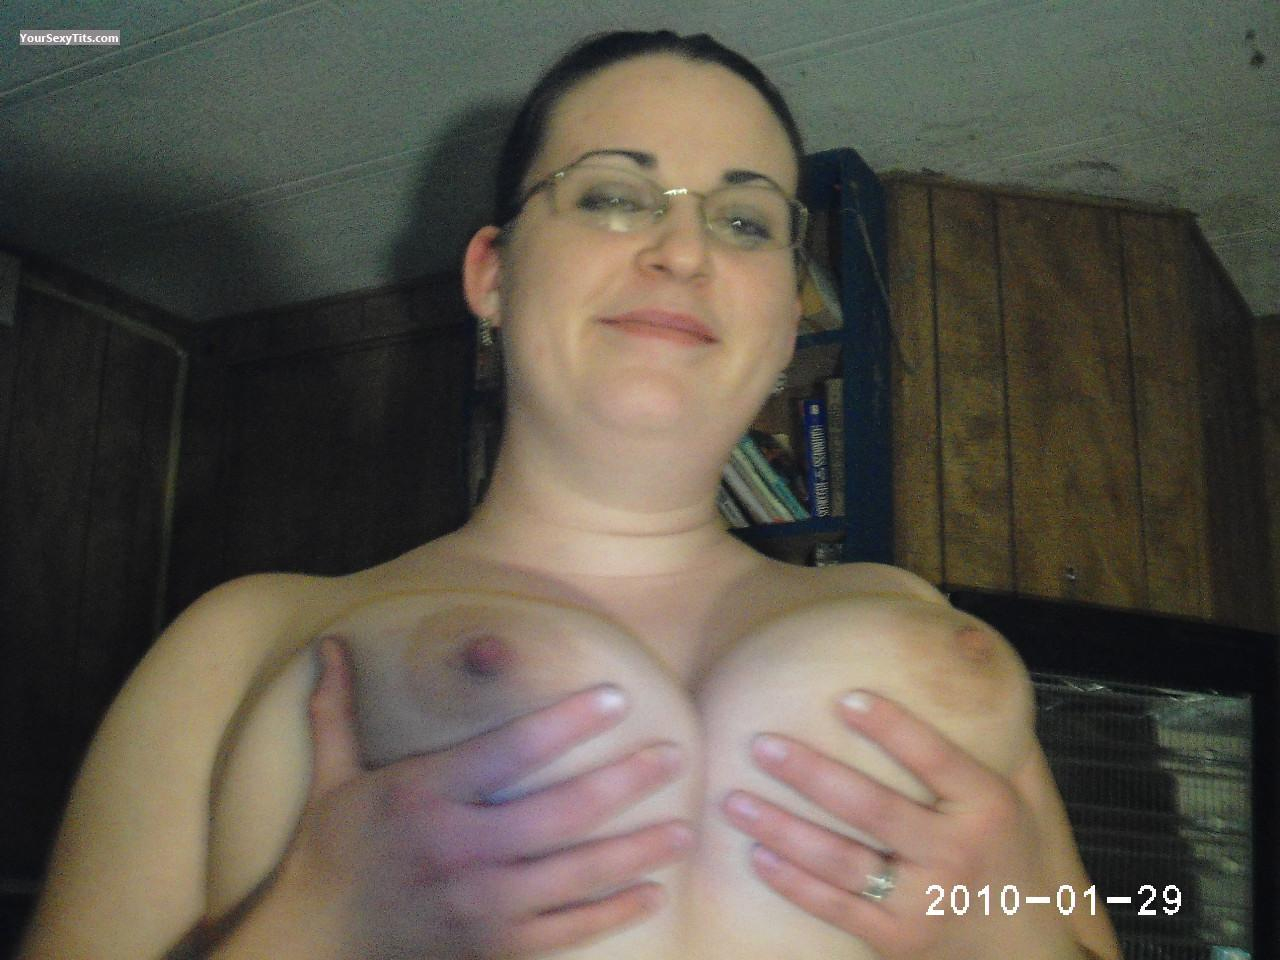 Tit Flash: Very Big Tits - Topless Cattwat from United States